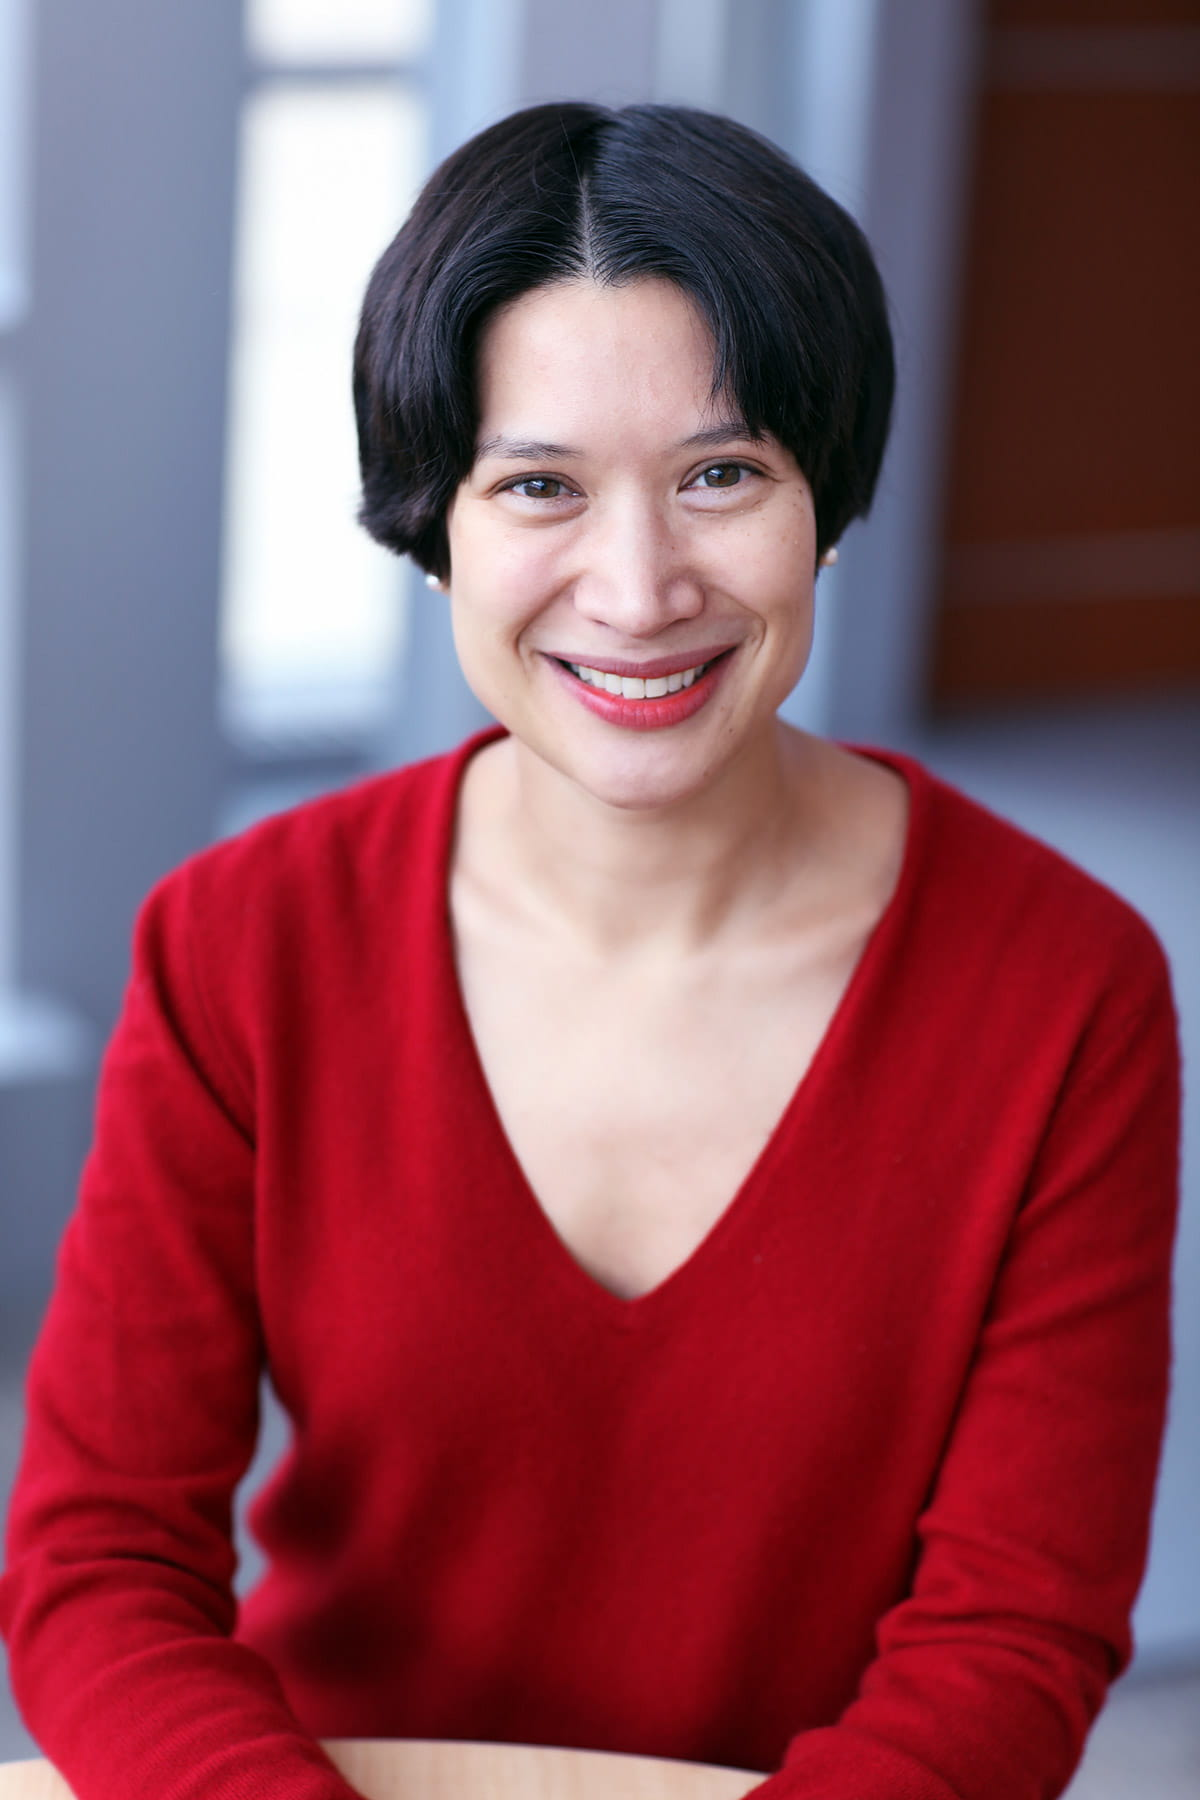 A photo of Tanya E. Froehlich.